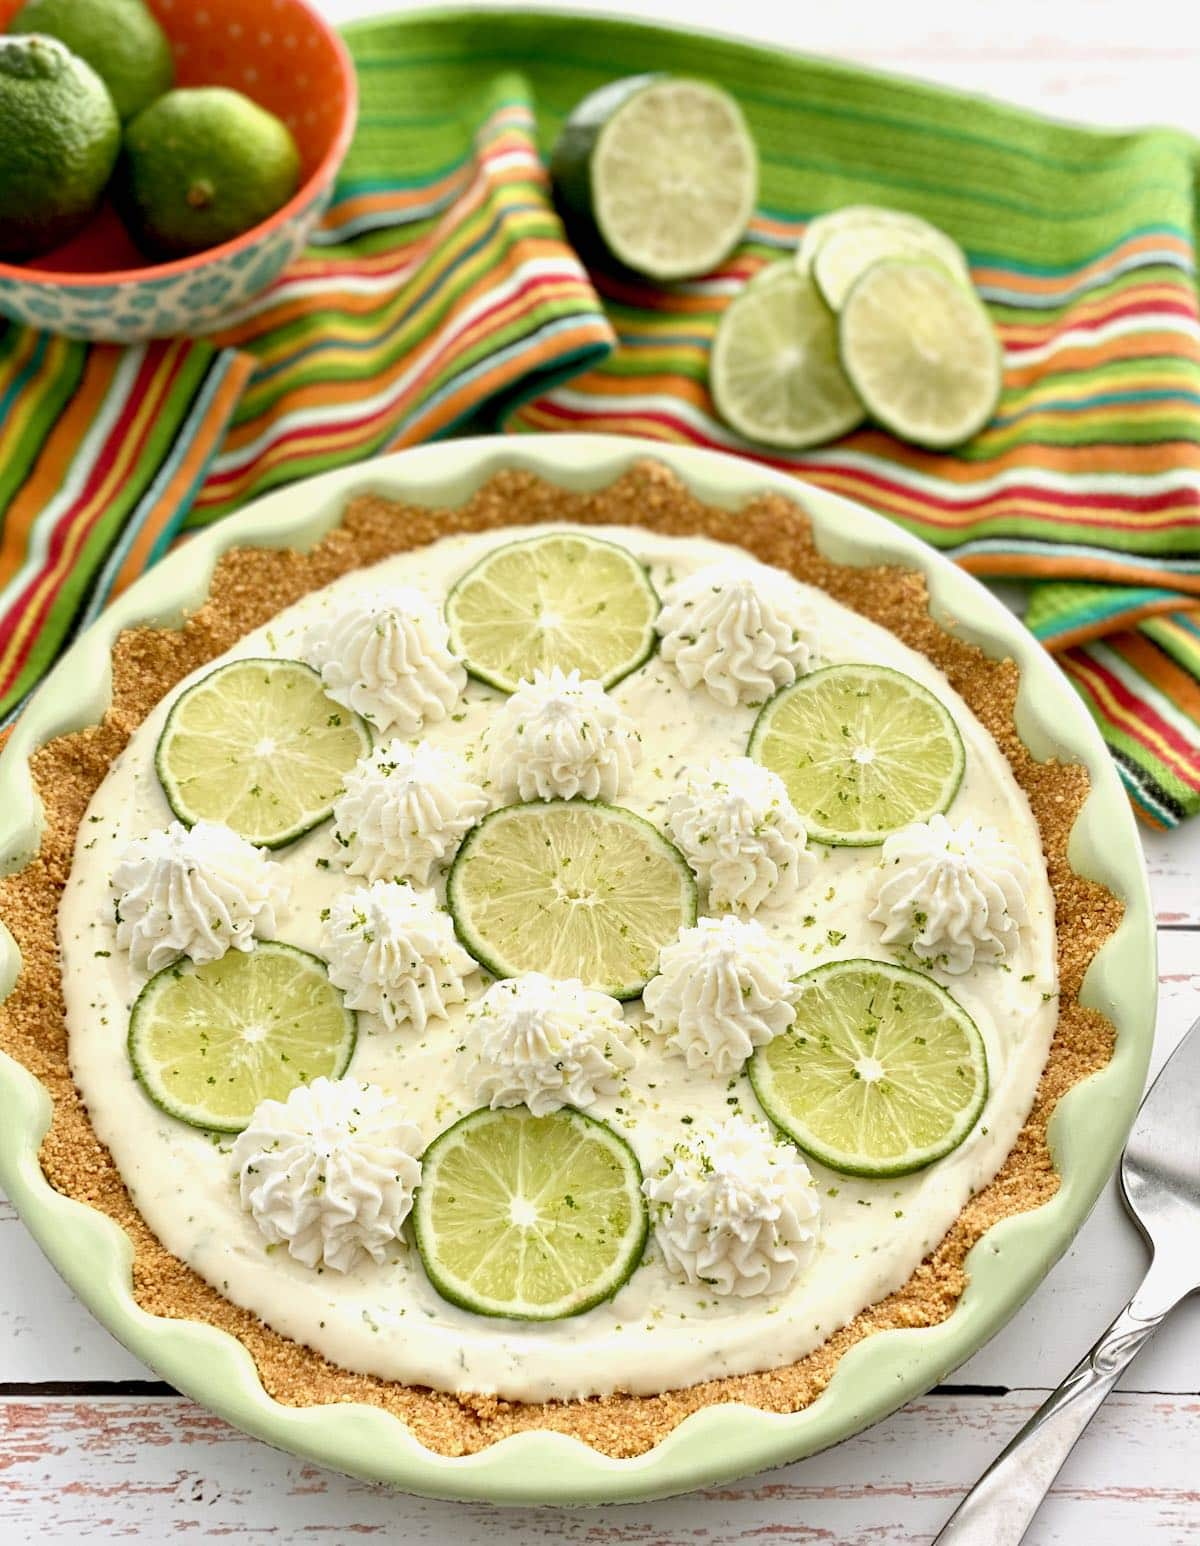 no bake key lime pie with green towel and limes.